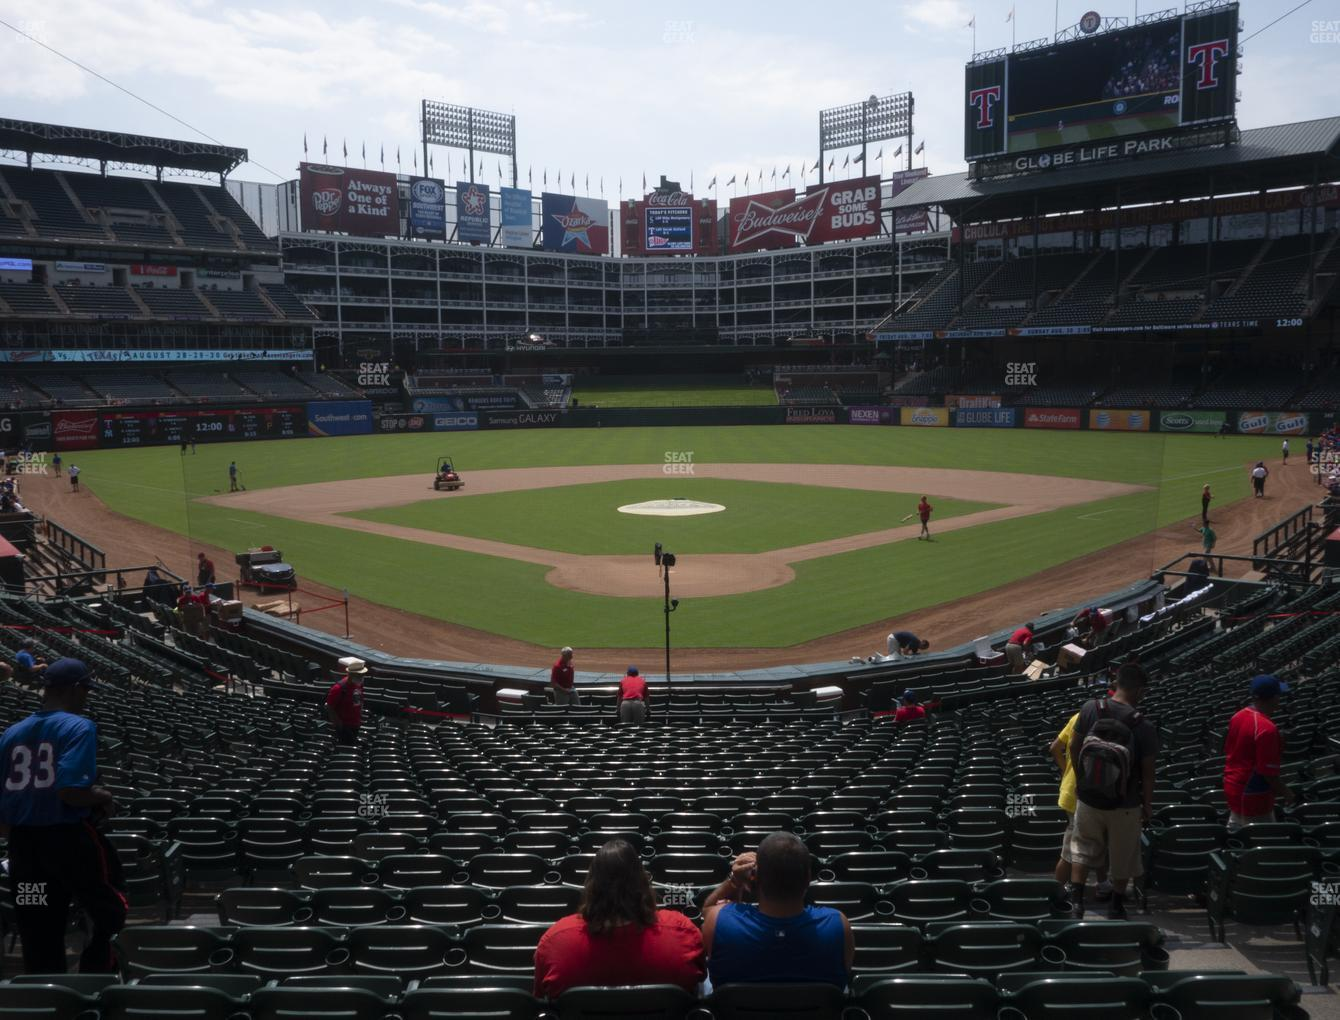 International Champions Cup at Globe Life Park Section 26 View